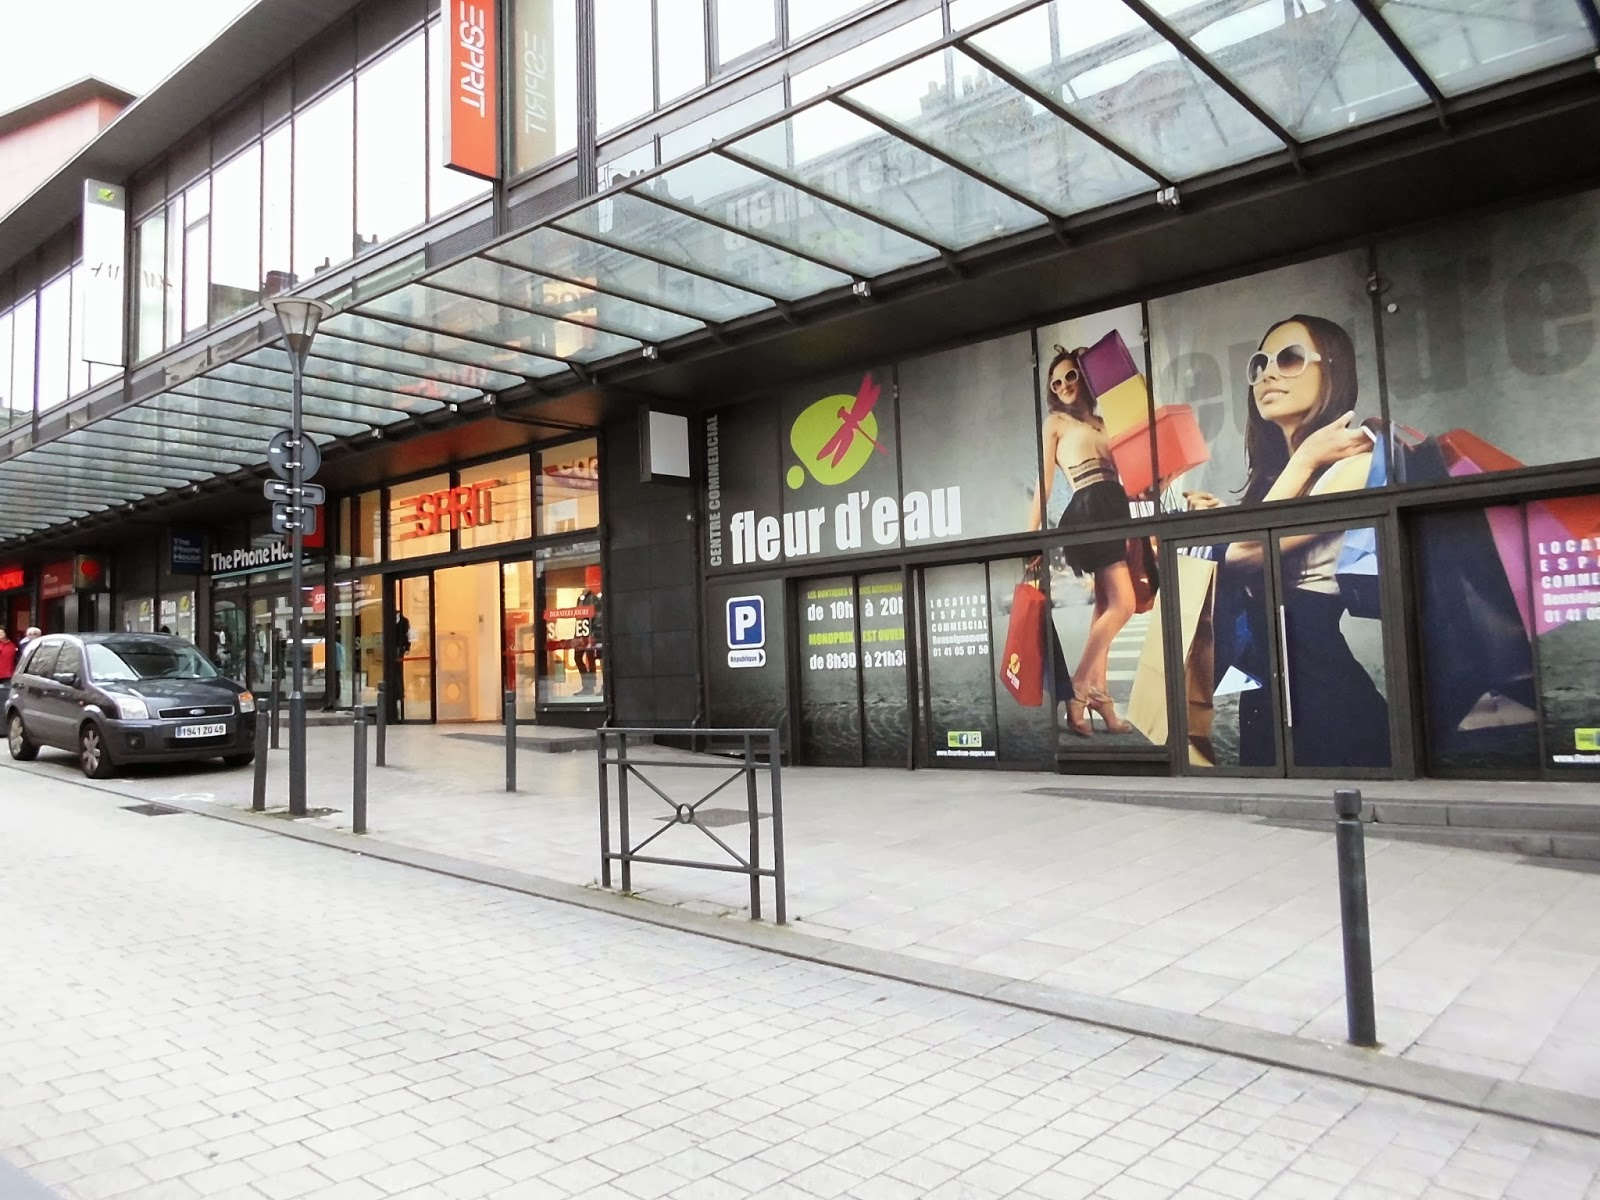 Esprit Shop Adn Angers Daily News The Esprit Closure Calls For An Open